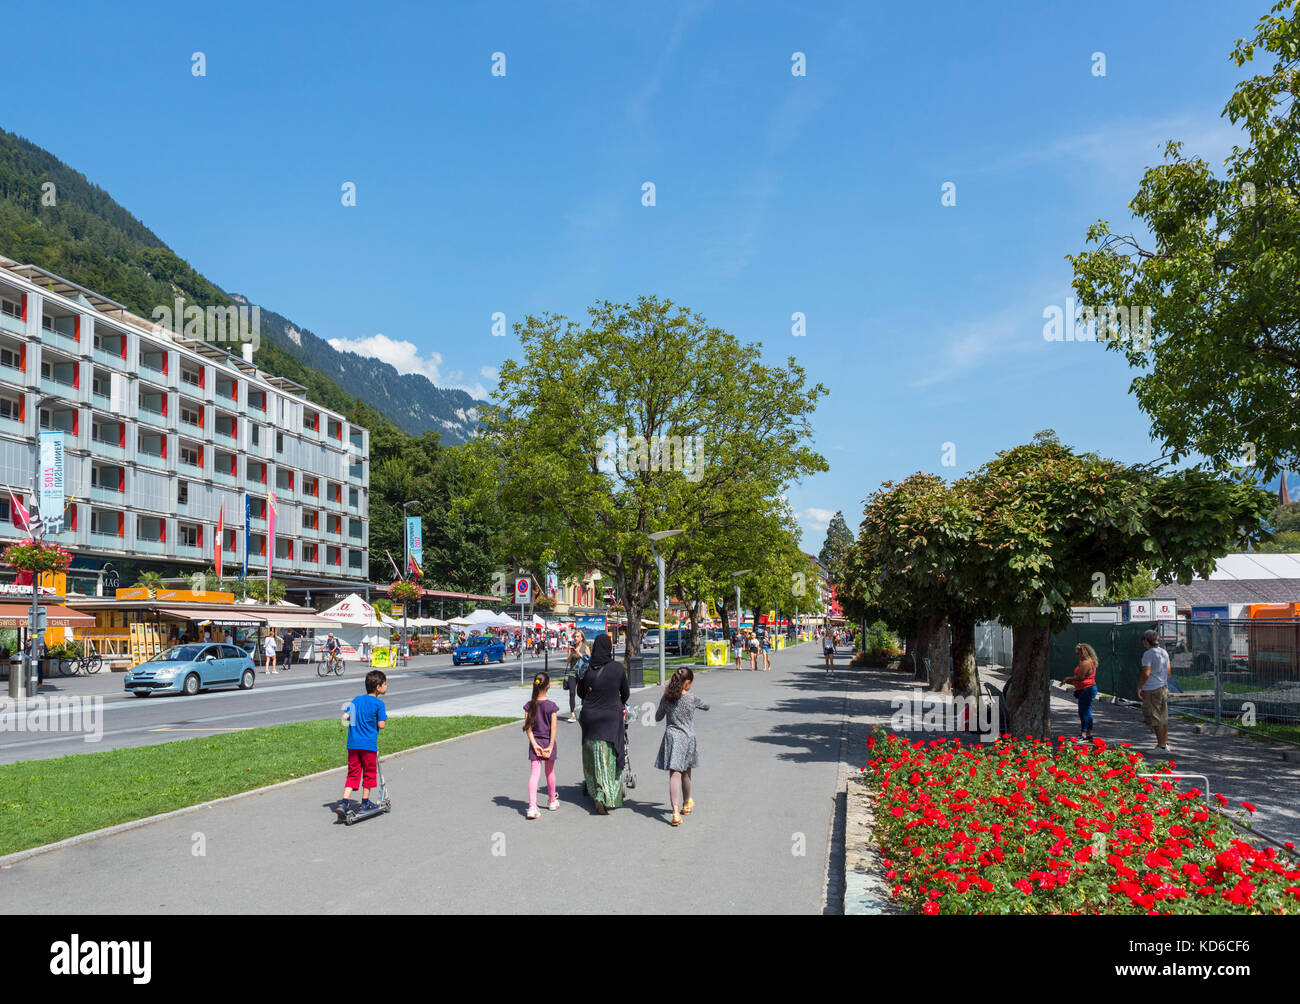 Höheweg, la rue principale d'Interlaken, Suisse Photo Stock